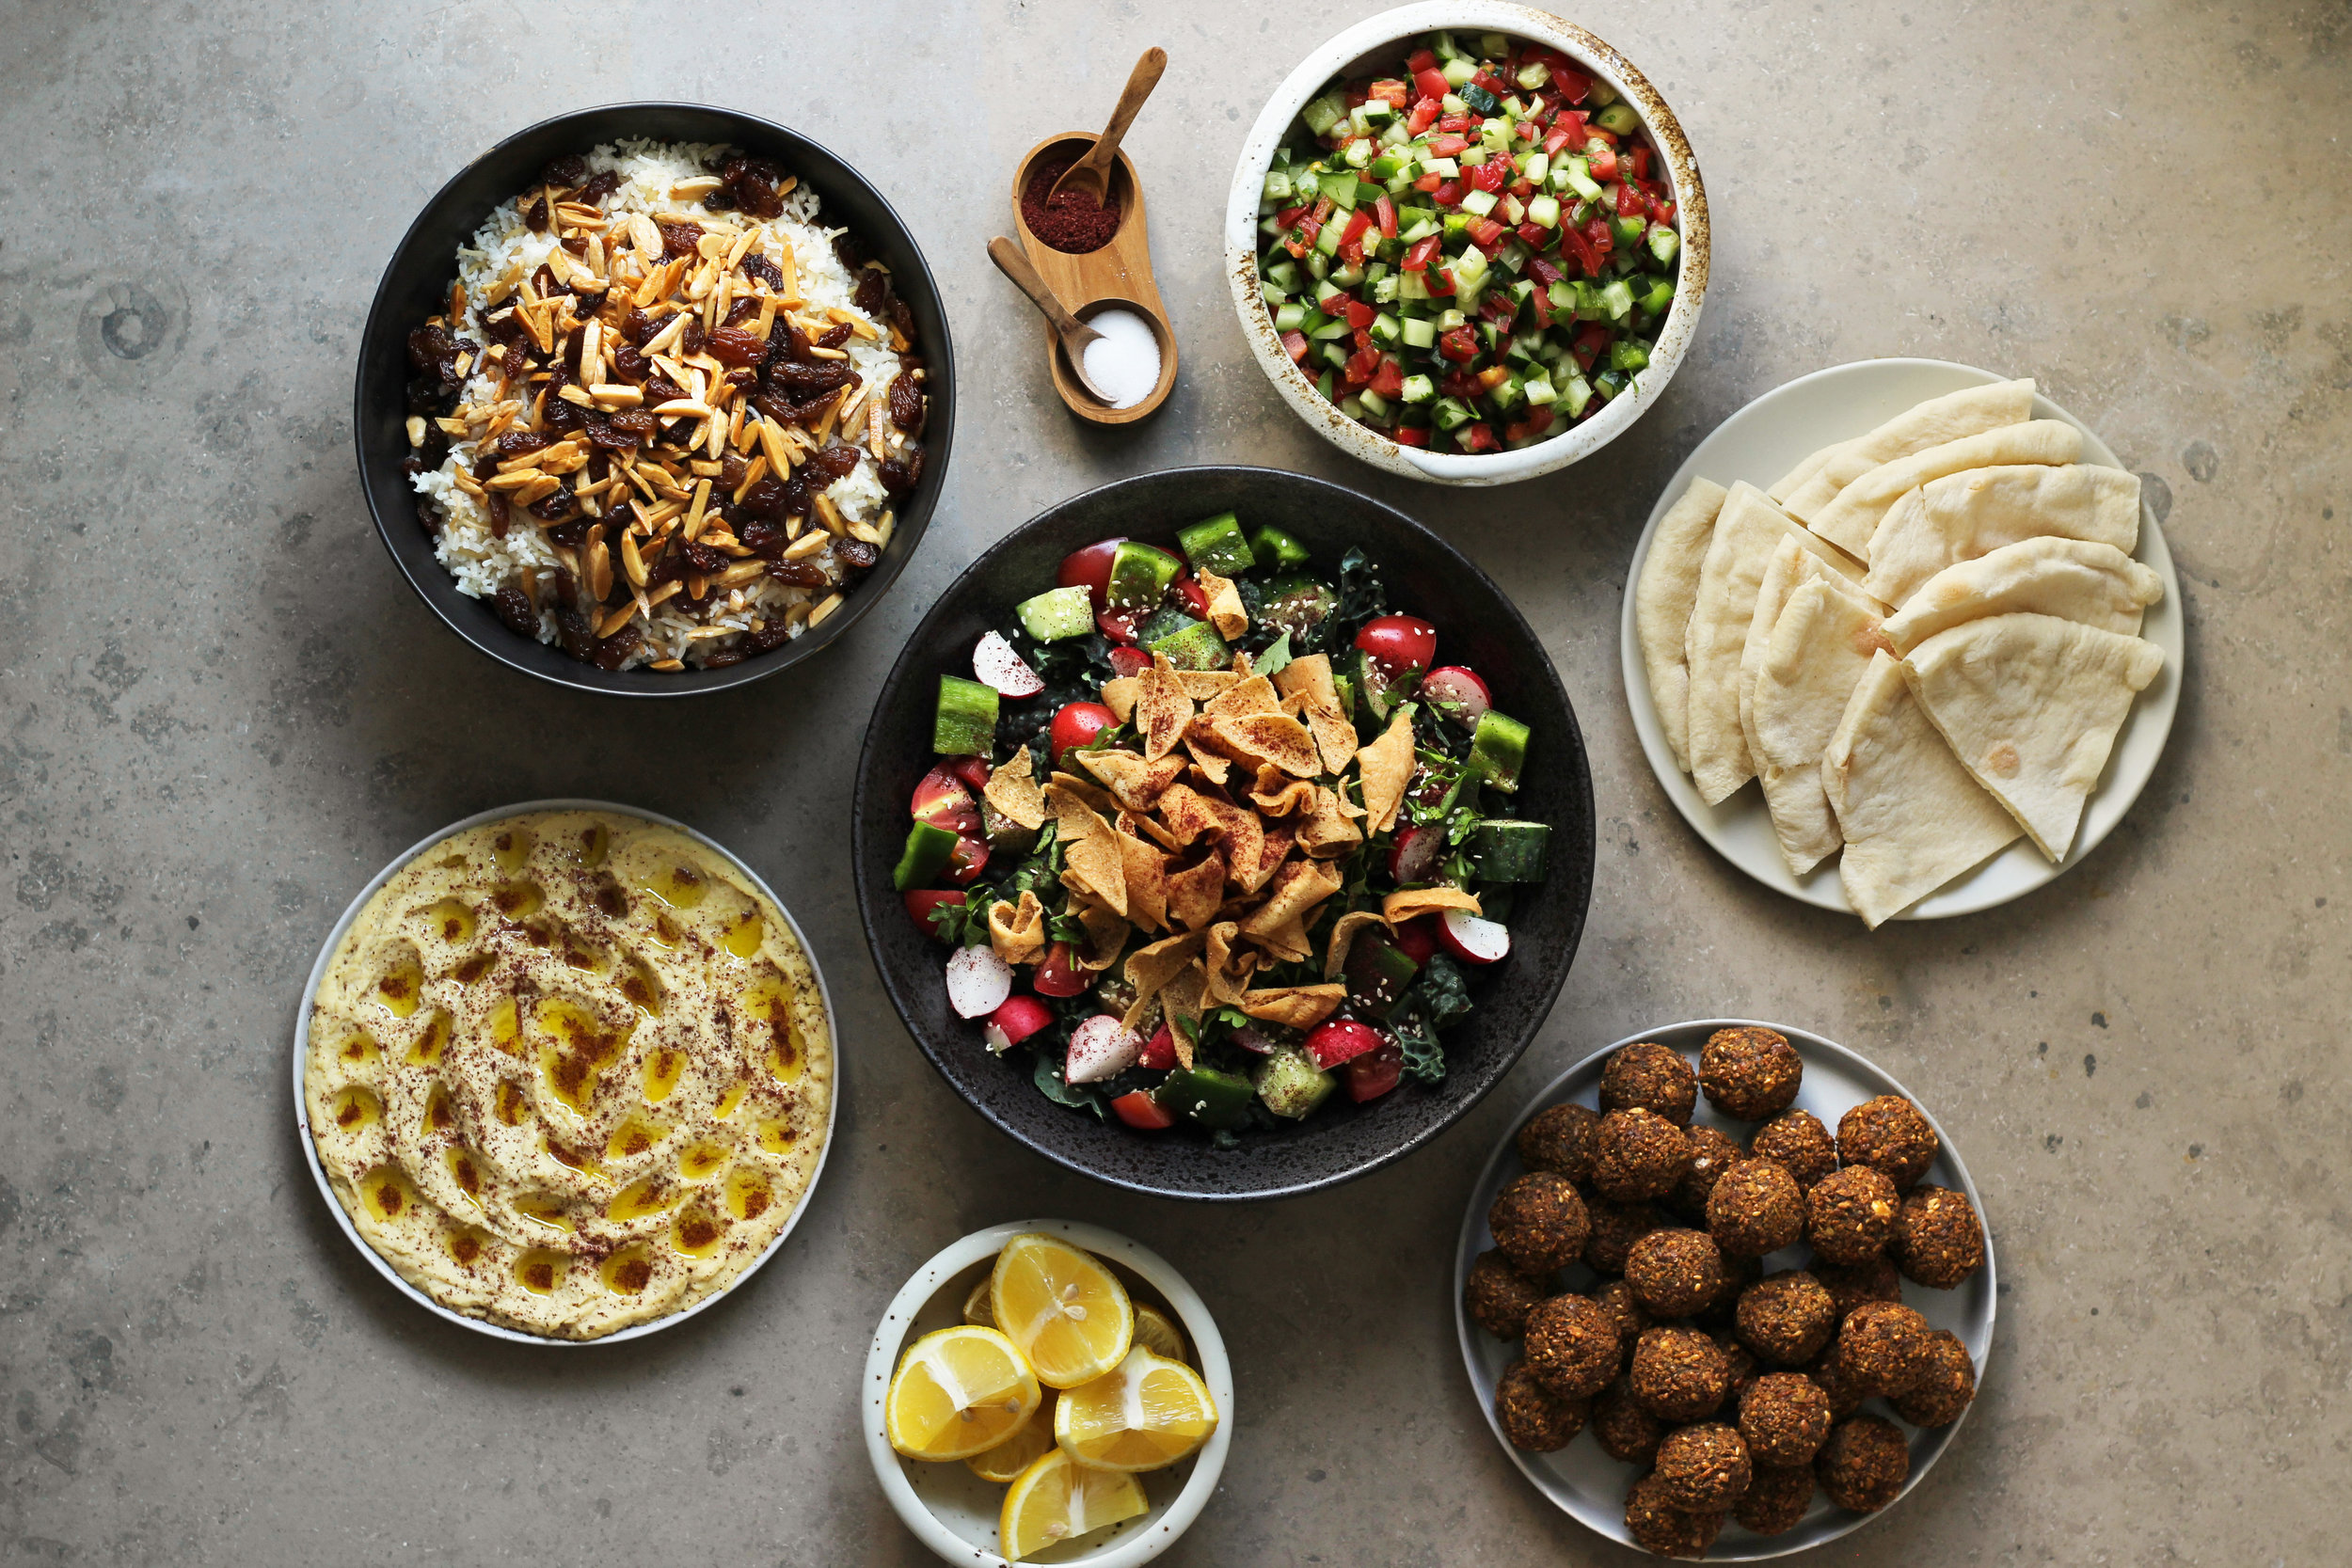 a vegan feast for the Advent fast, or for entertaining vegan guests